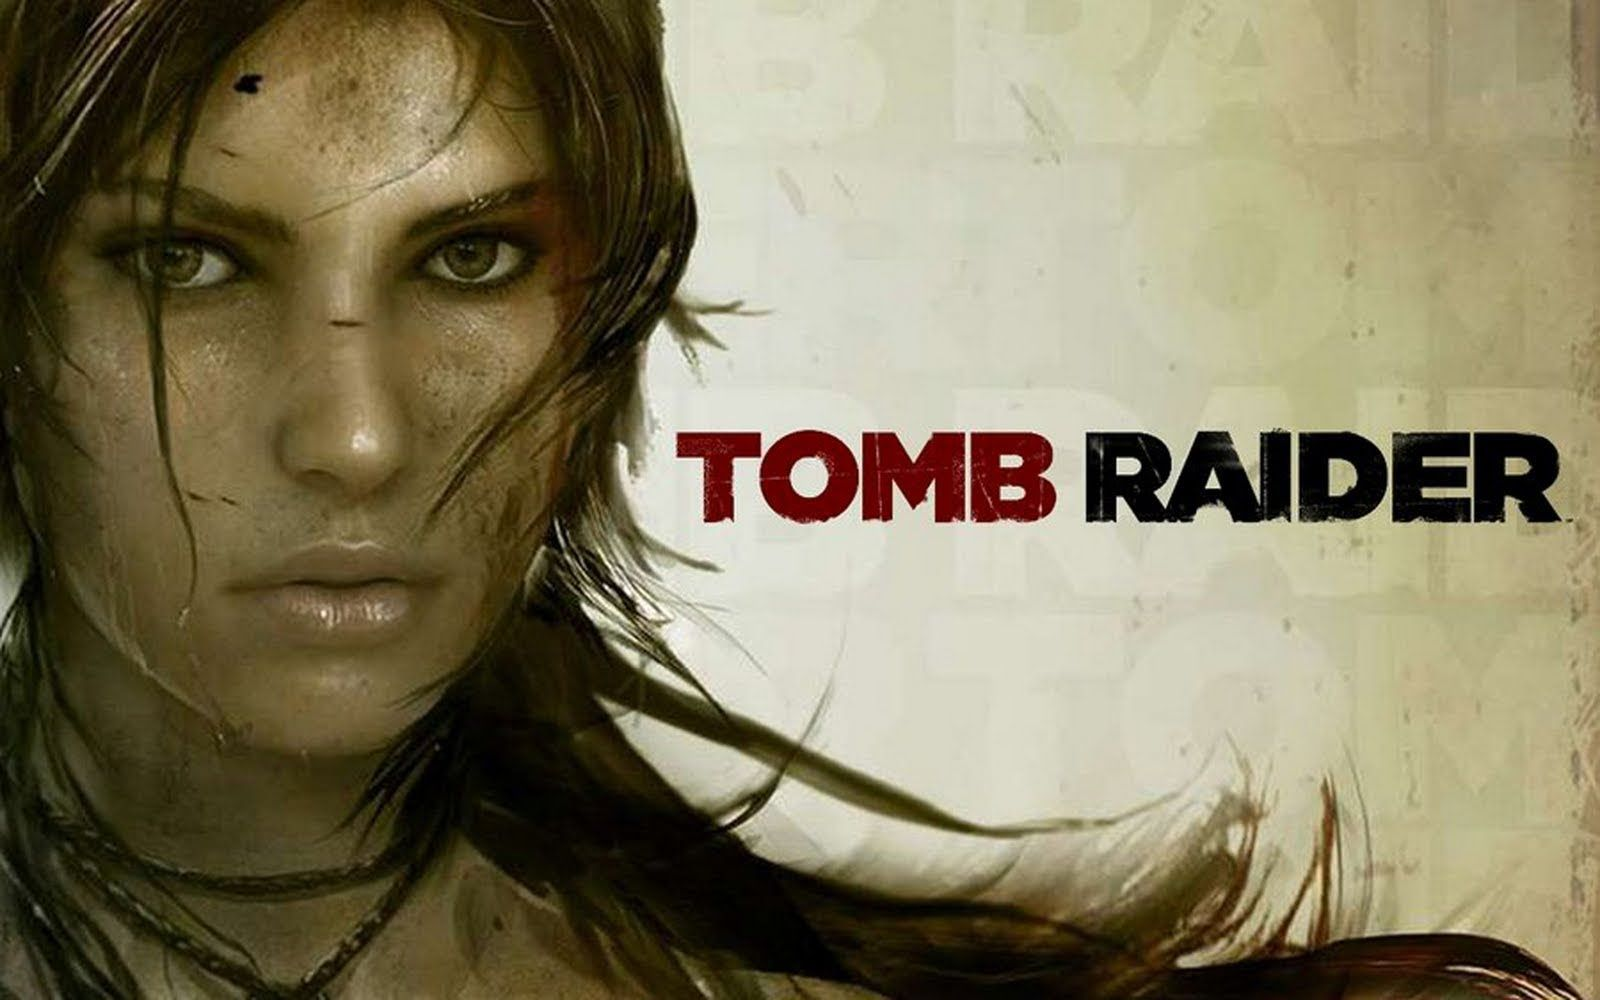 Tomb Raider Pelicula Completa Espanol Tomb Raider Game Tomb